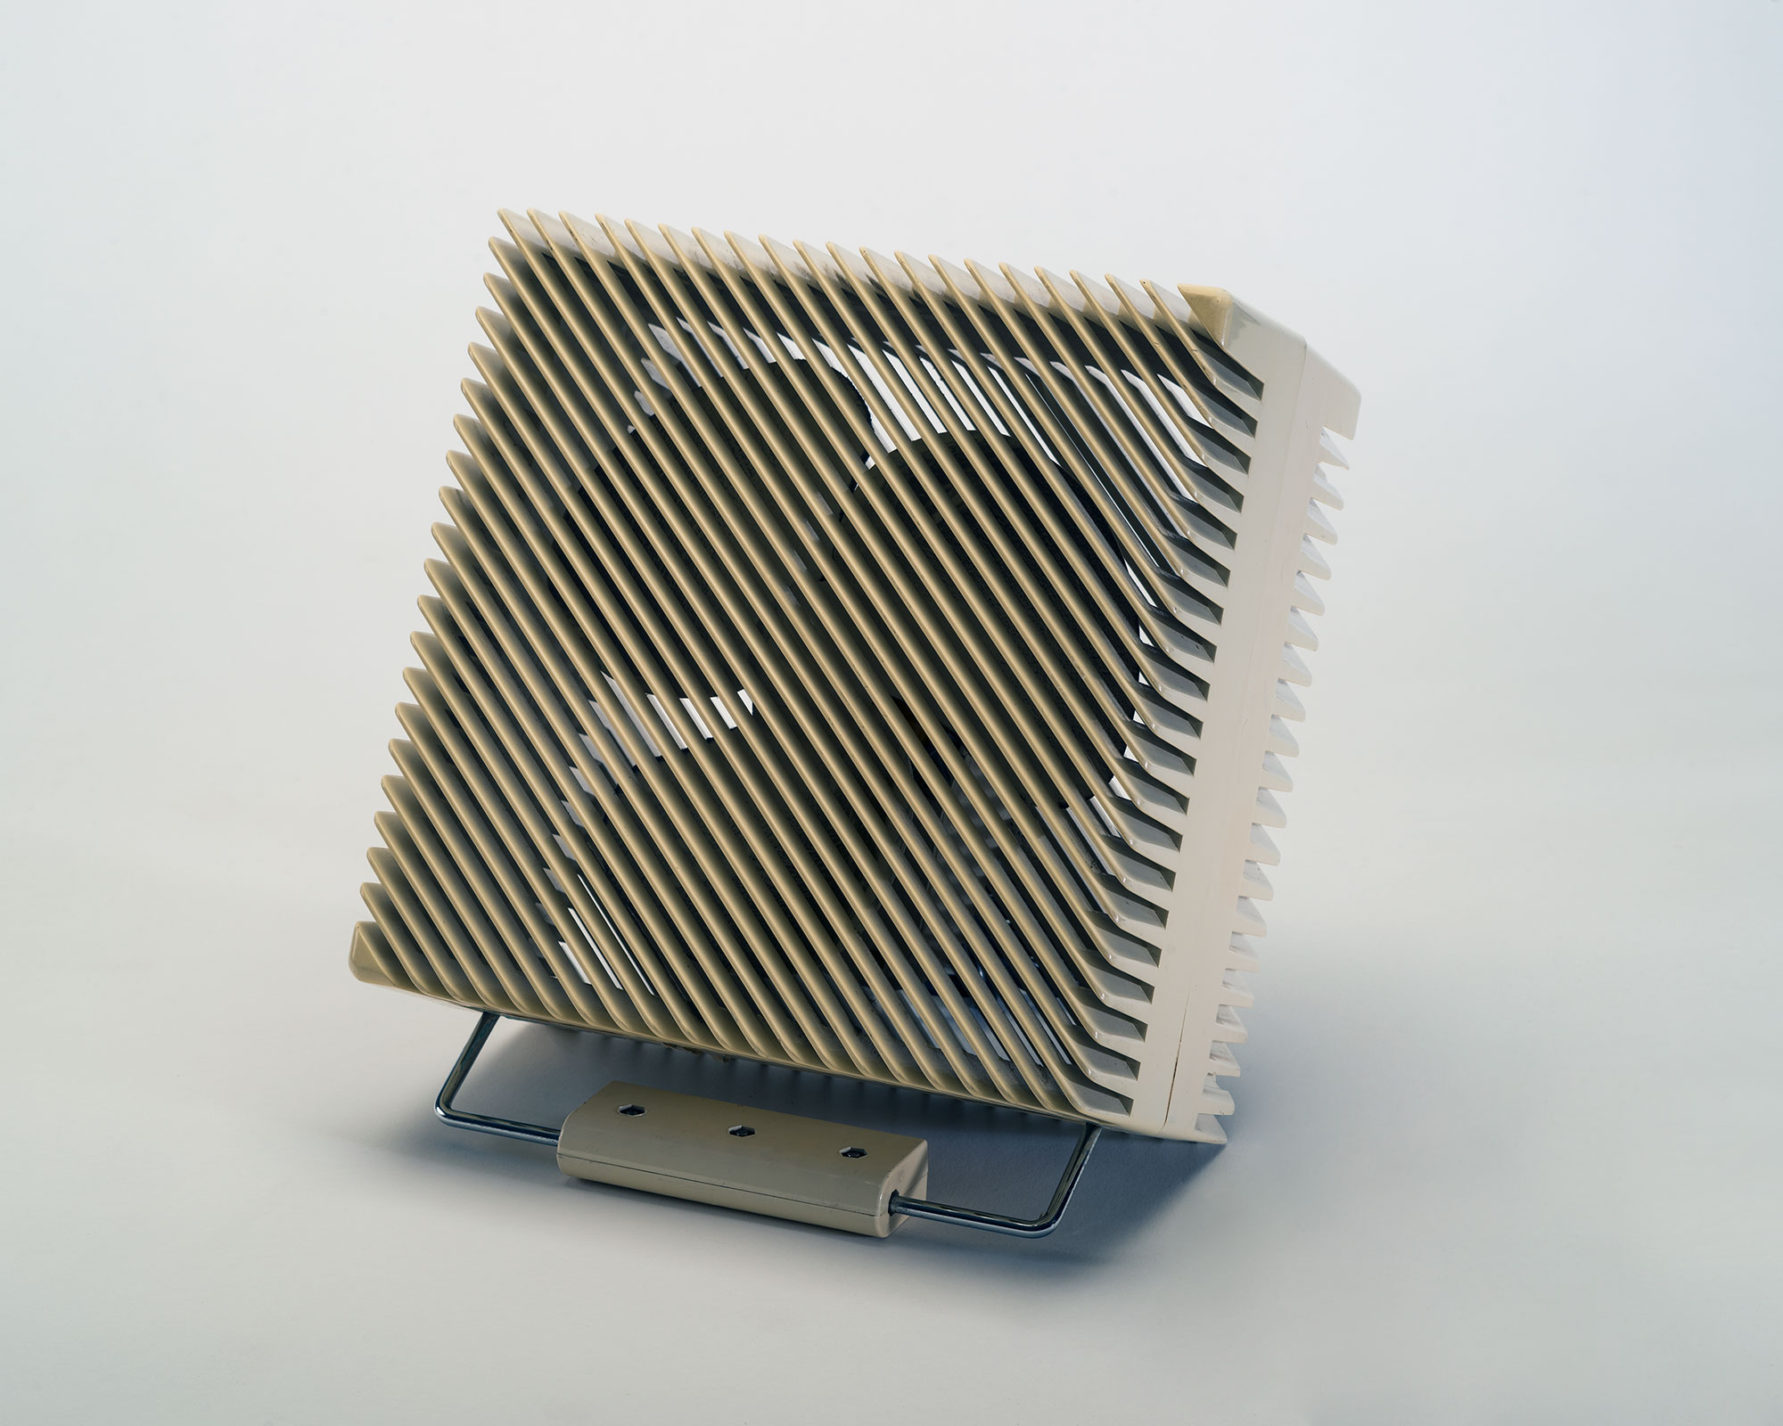 White square table fan with diagonal slats on the front of the casing.